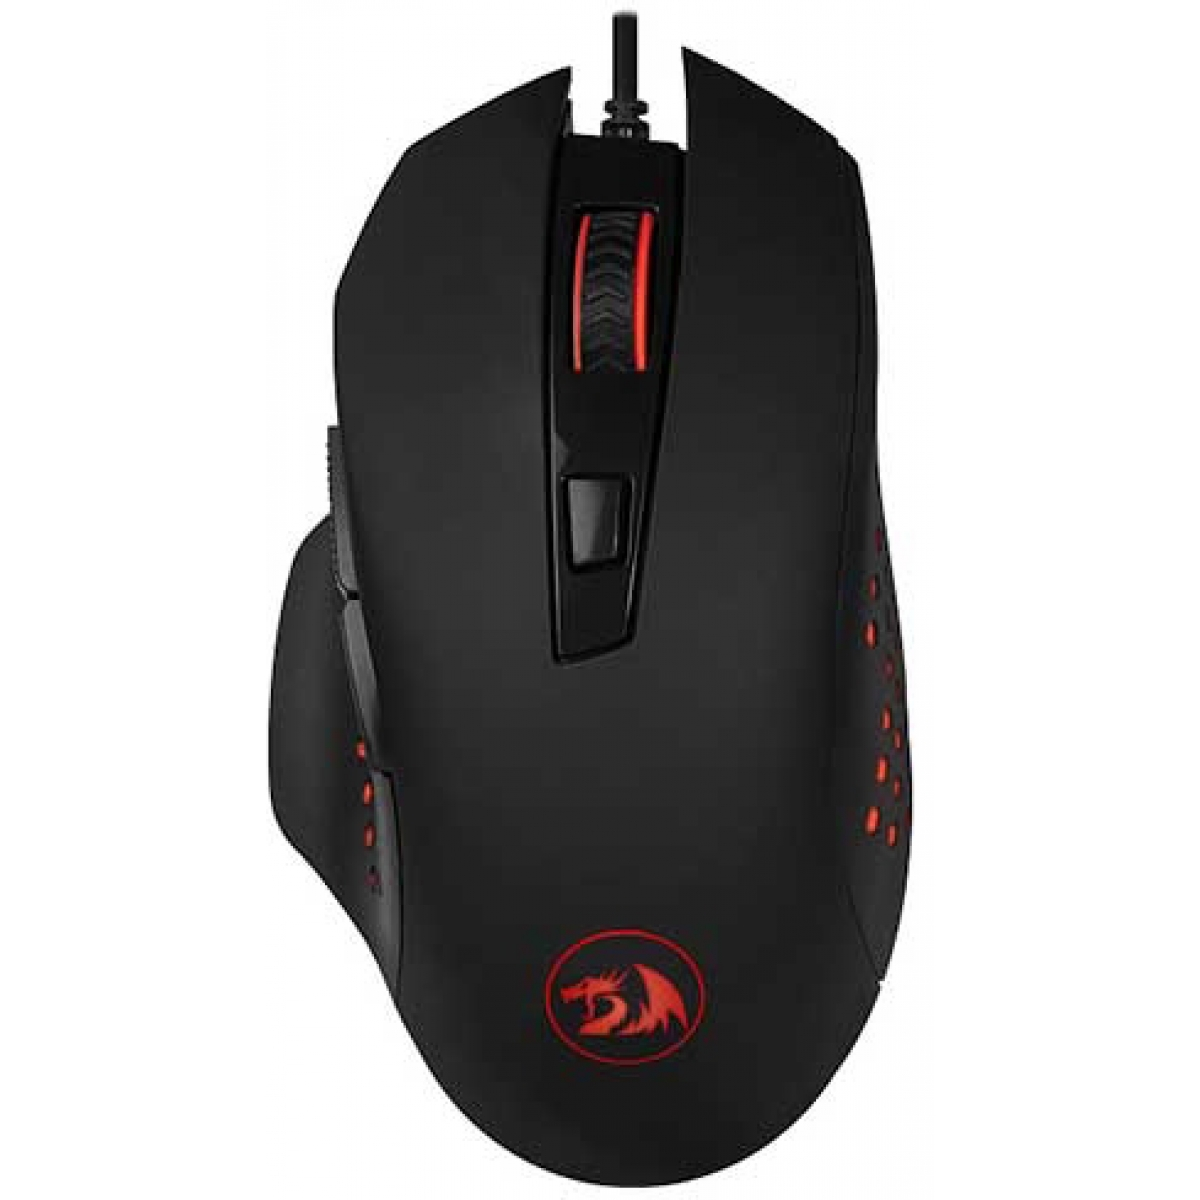 Mouse Gamer Redragon Gainer M610, 3200 DPI, 6 Botões, Black